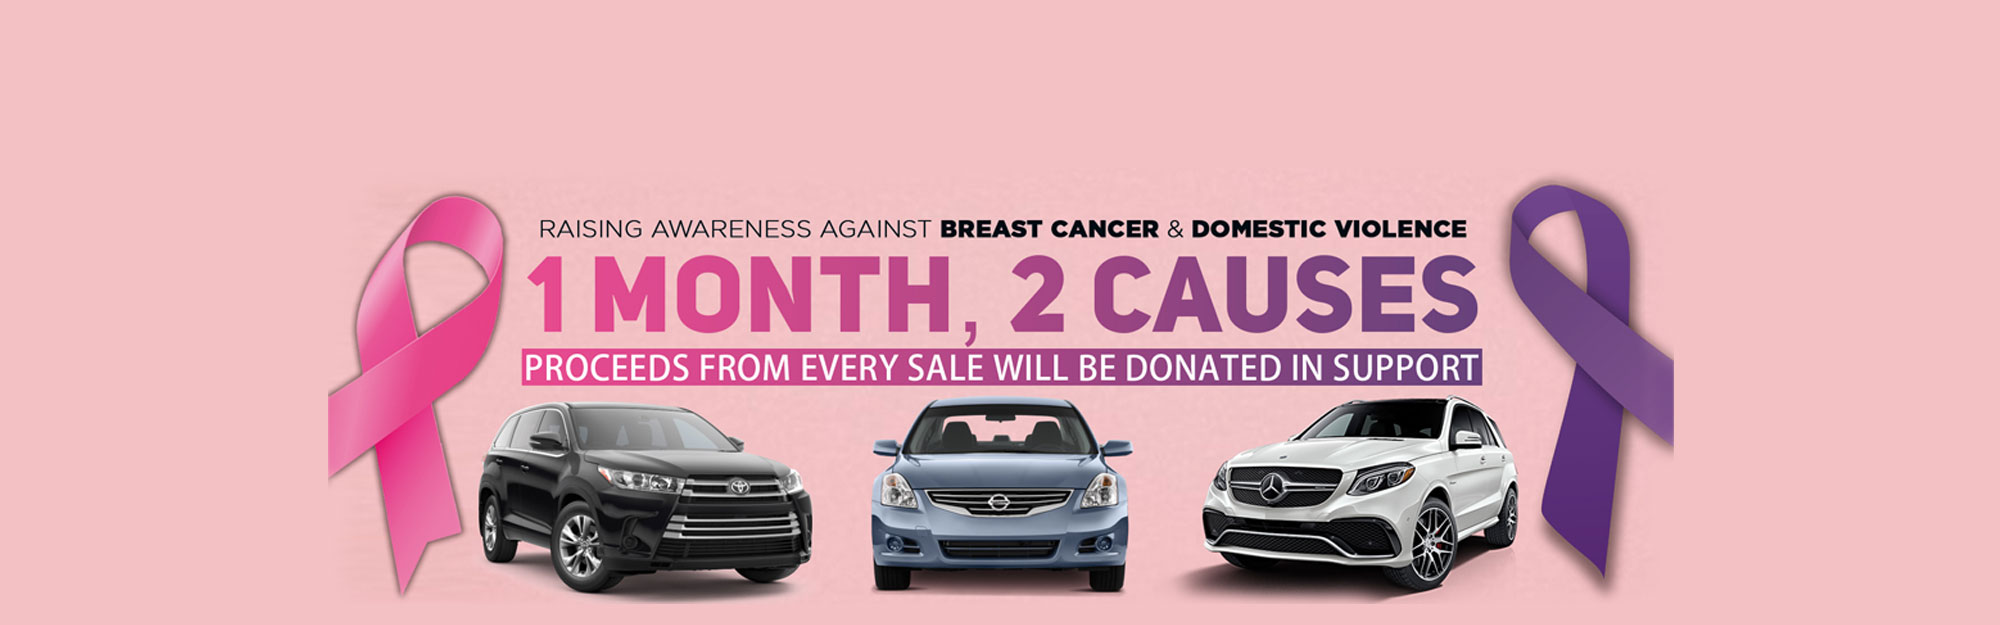 Breast Cancer & Domestic Violence Awareness